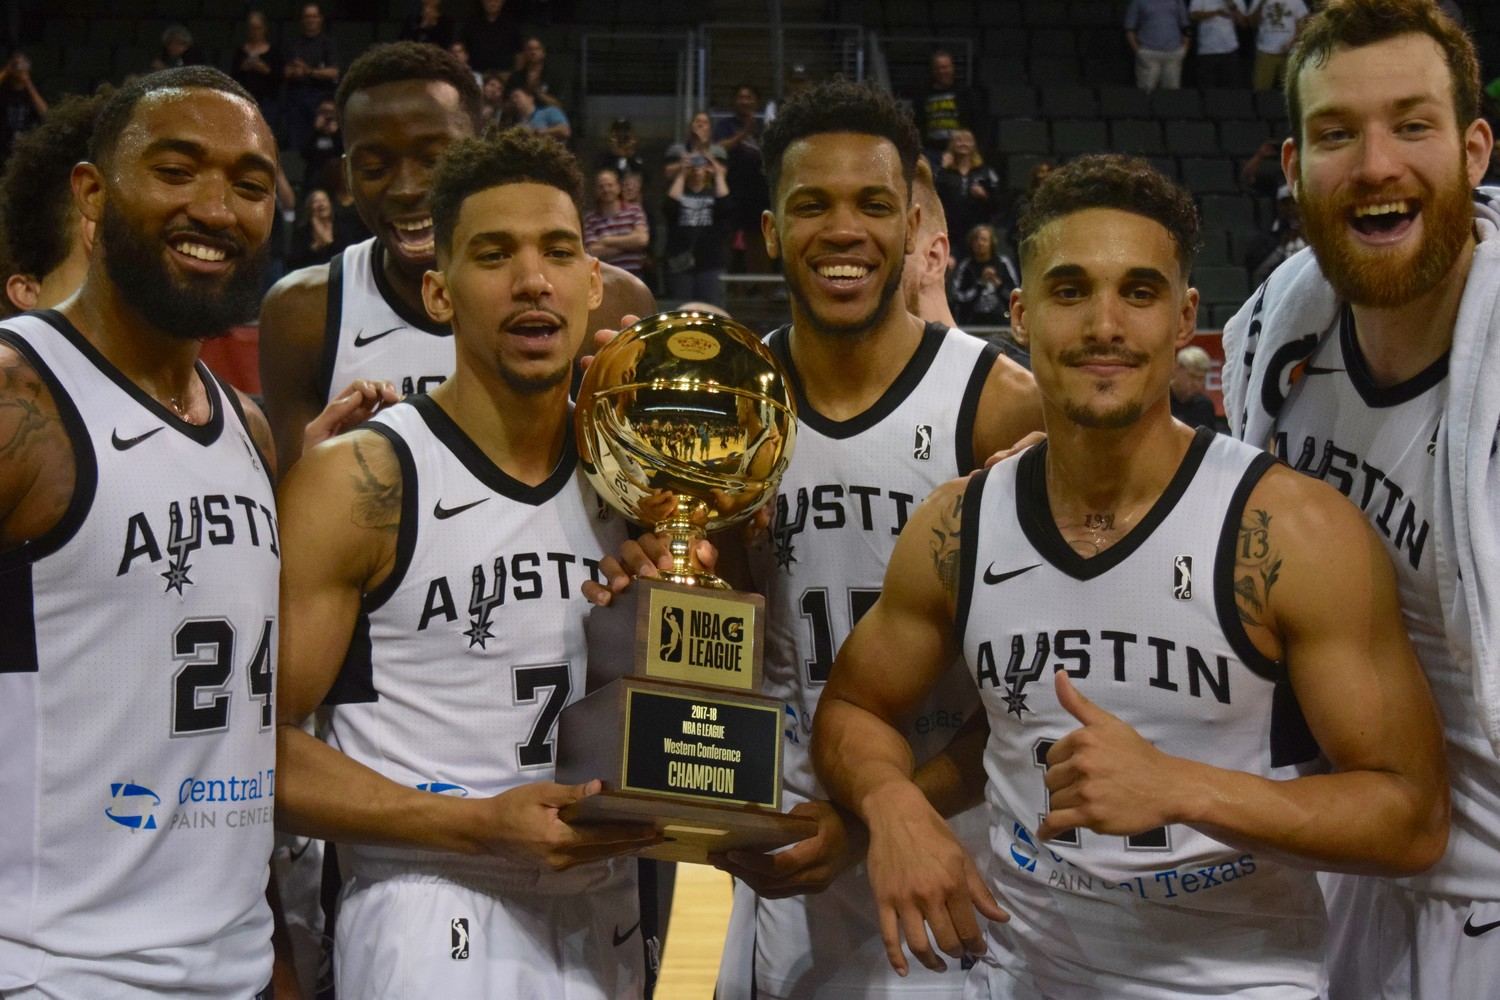 The Austin Spurs beat the South Bay Lakers 104-93 to win the Western Conference Final to advance to the G League Finals.